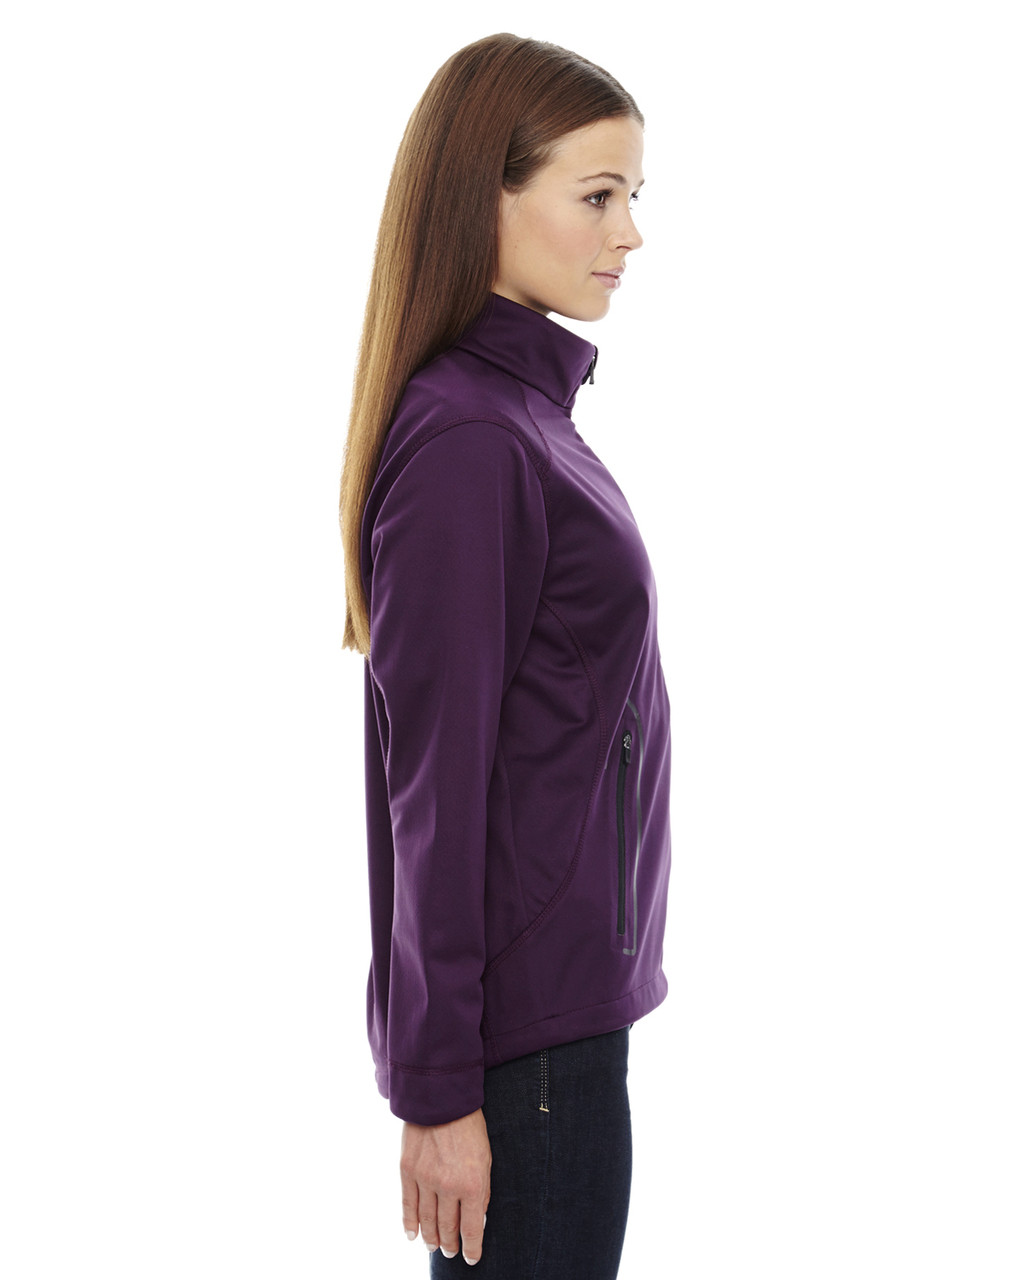 Mulberry Purple-side 78655 North End Sport Red Splice Three-Layer Light Bonded Soft Shell Jacket